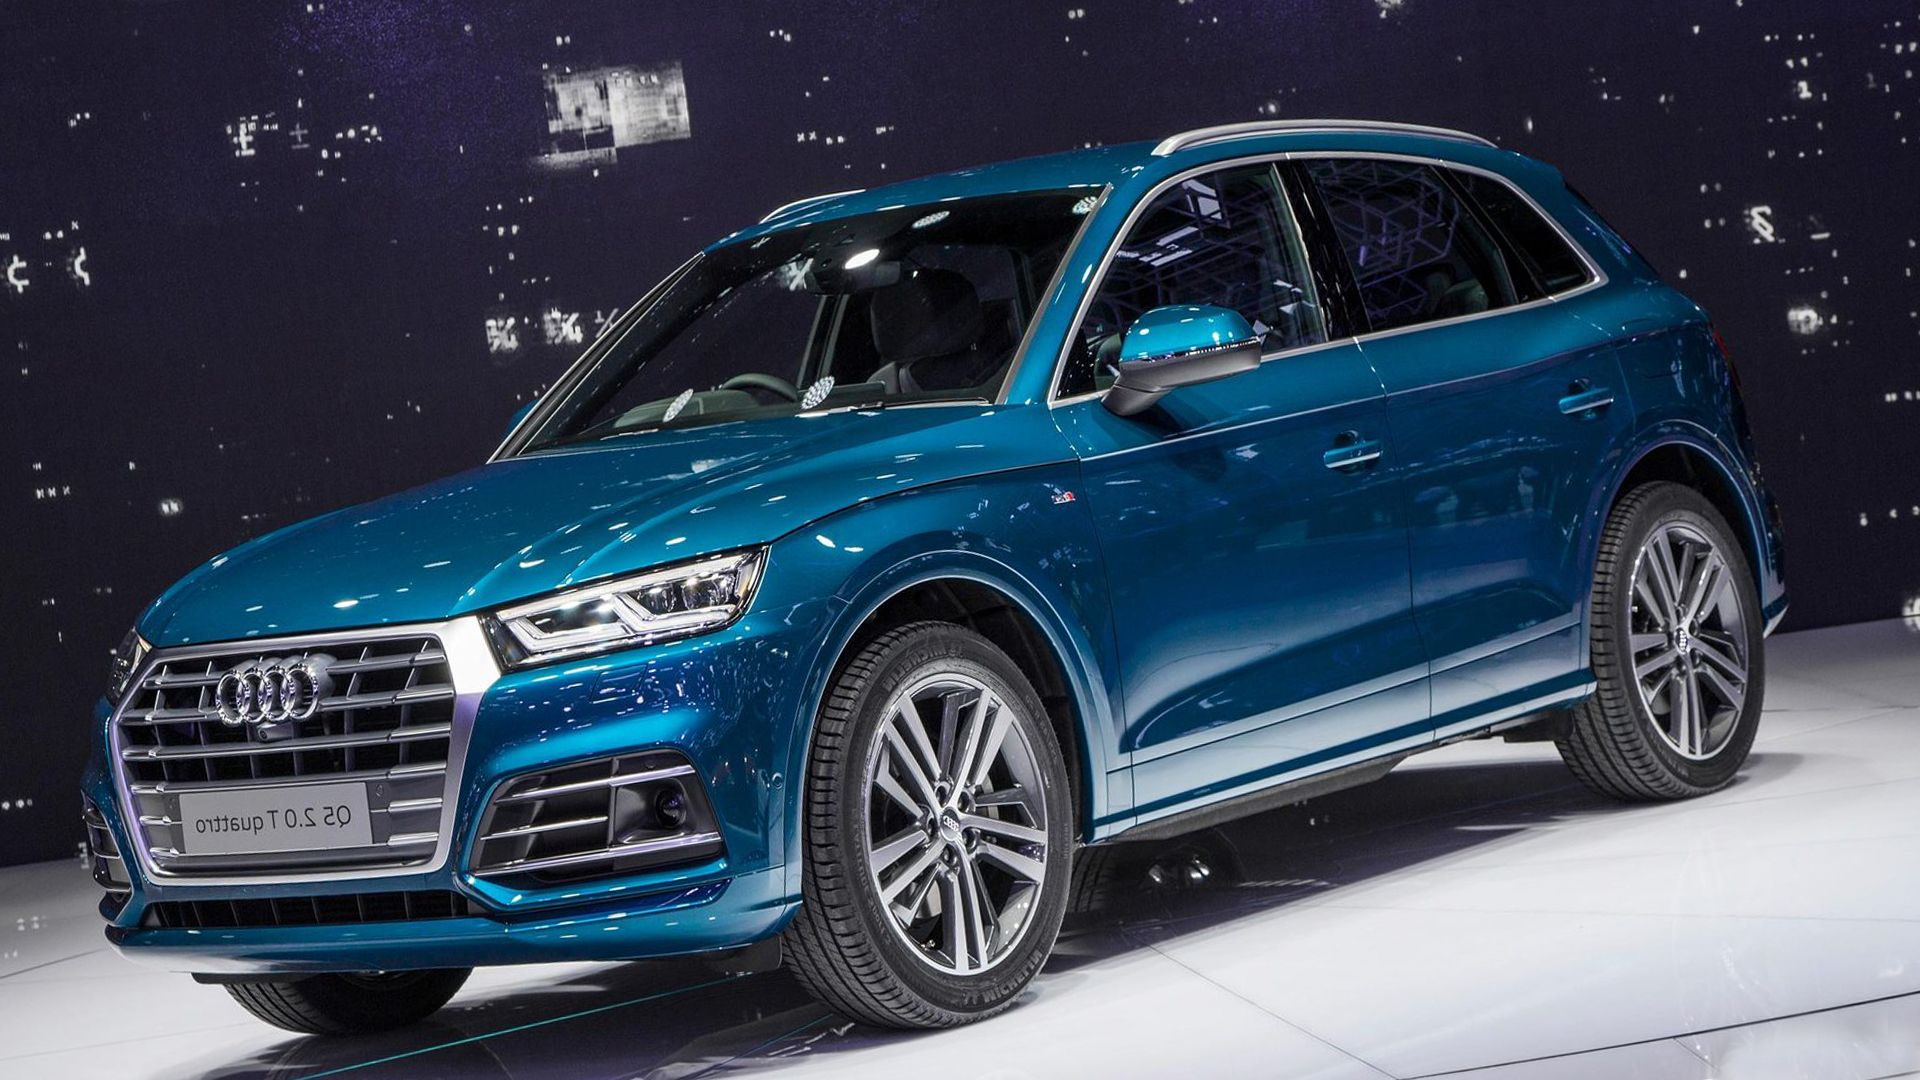 2019 Audi Q5 Price | Everything | Pinterest | Audi, Audi q5 price and Audi cars